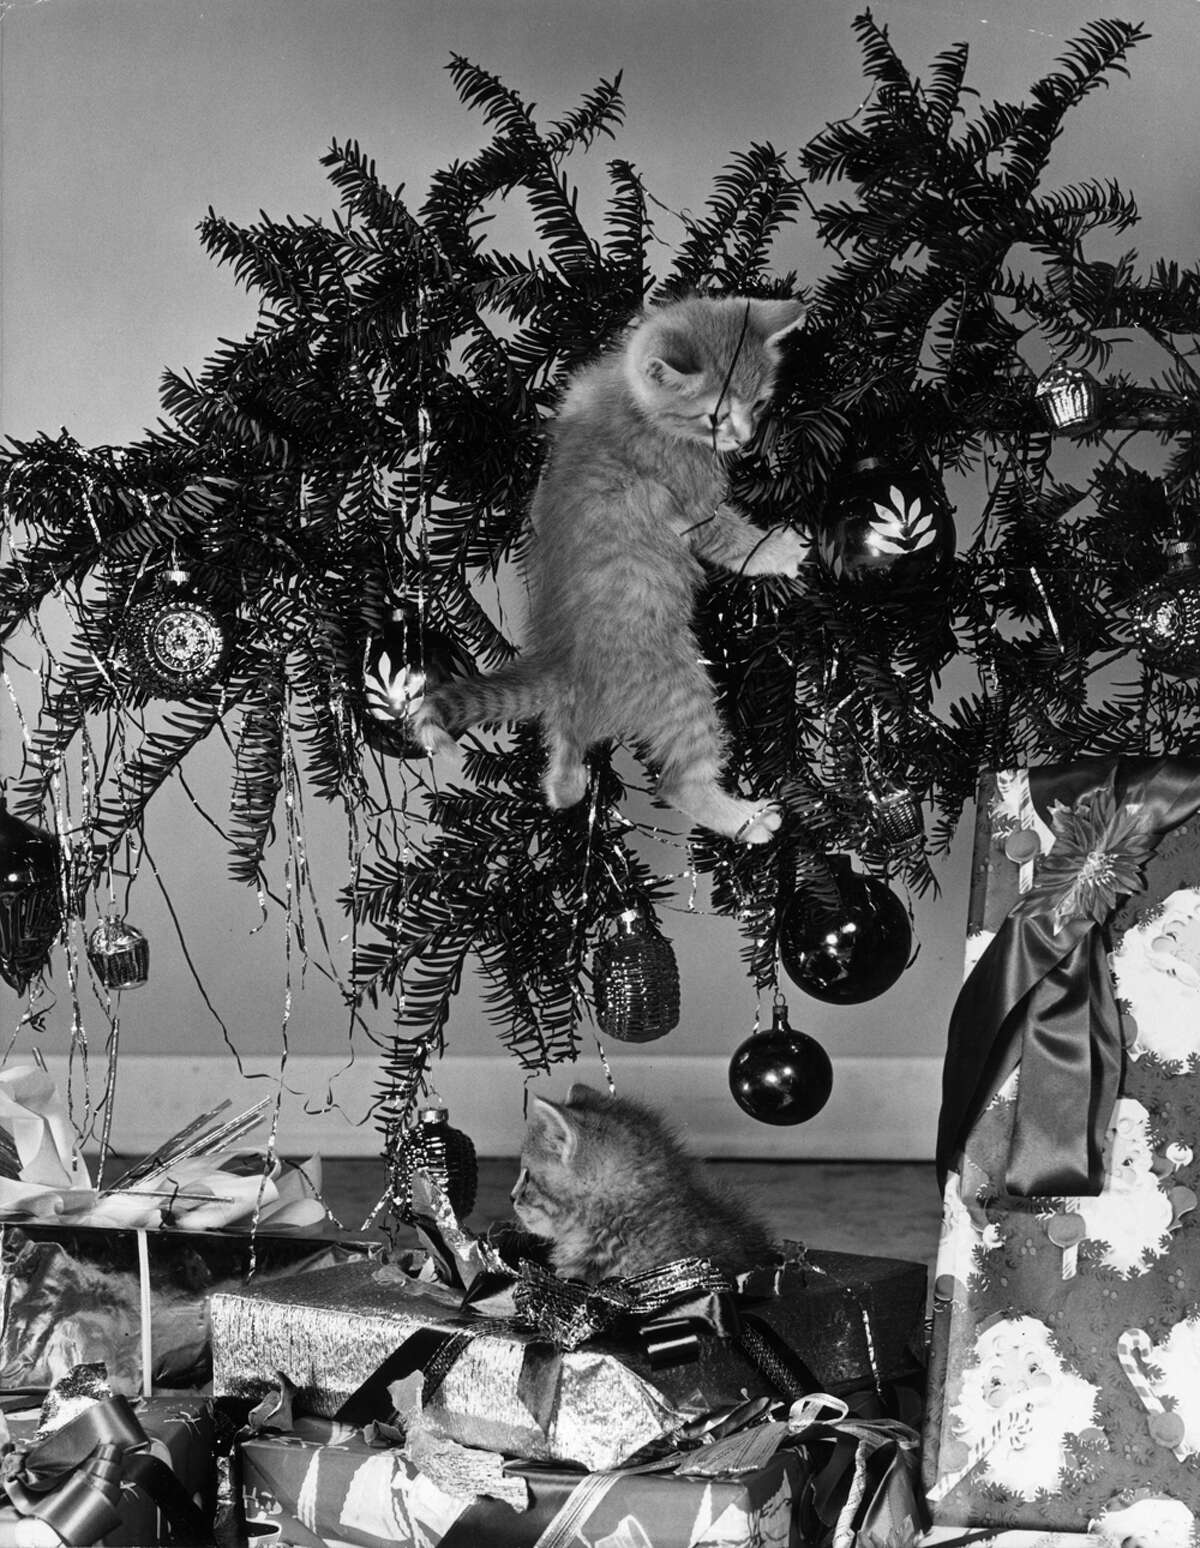 This kitten would be enjoying Christmas more if he wasn't about to come crashing down on his friend, along with the Christmas tree.